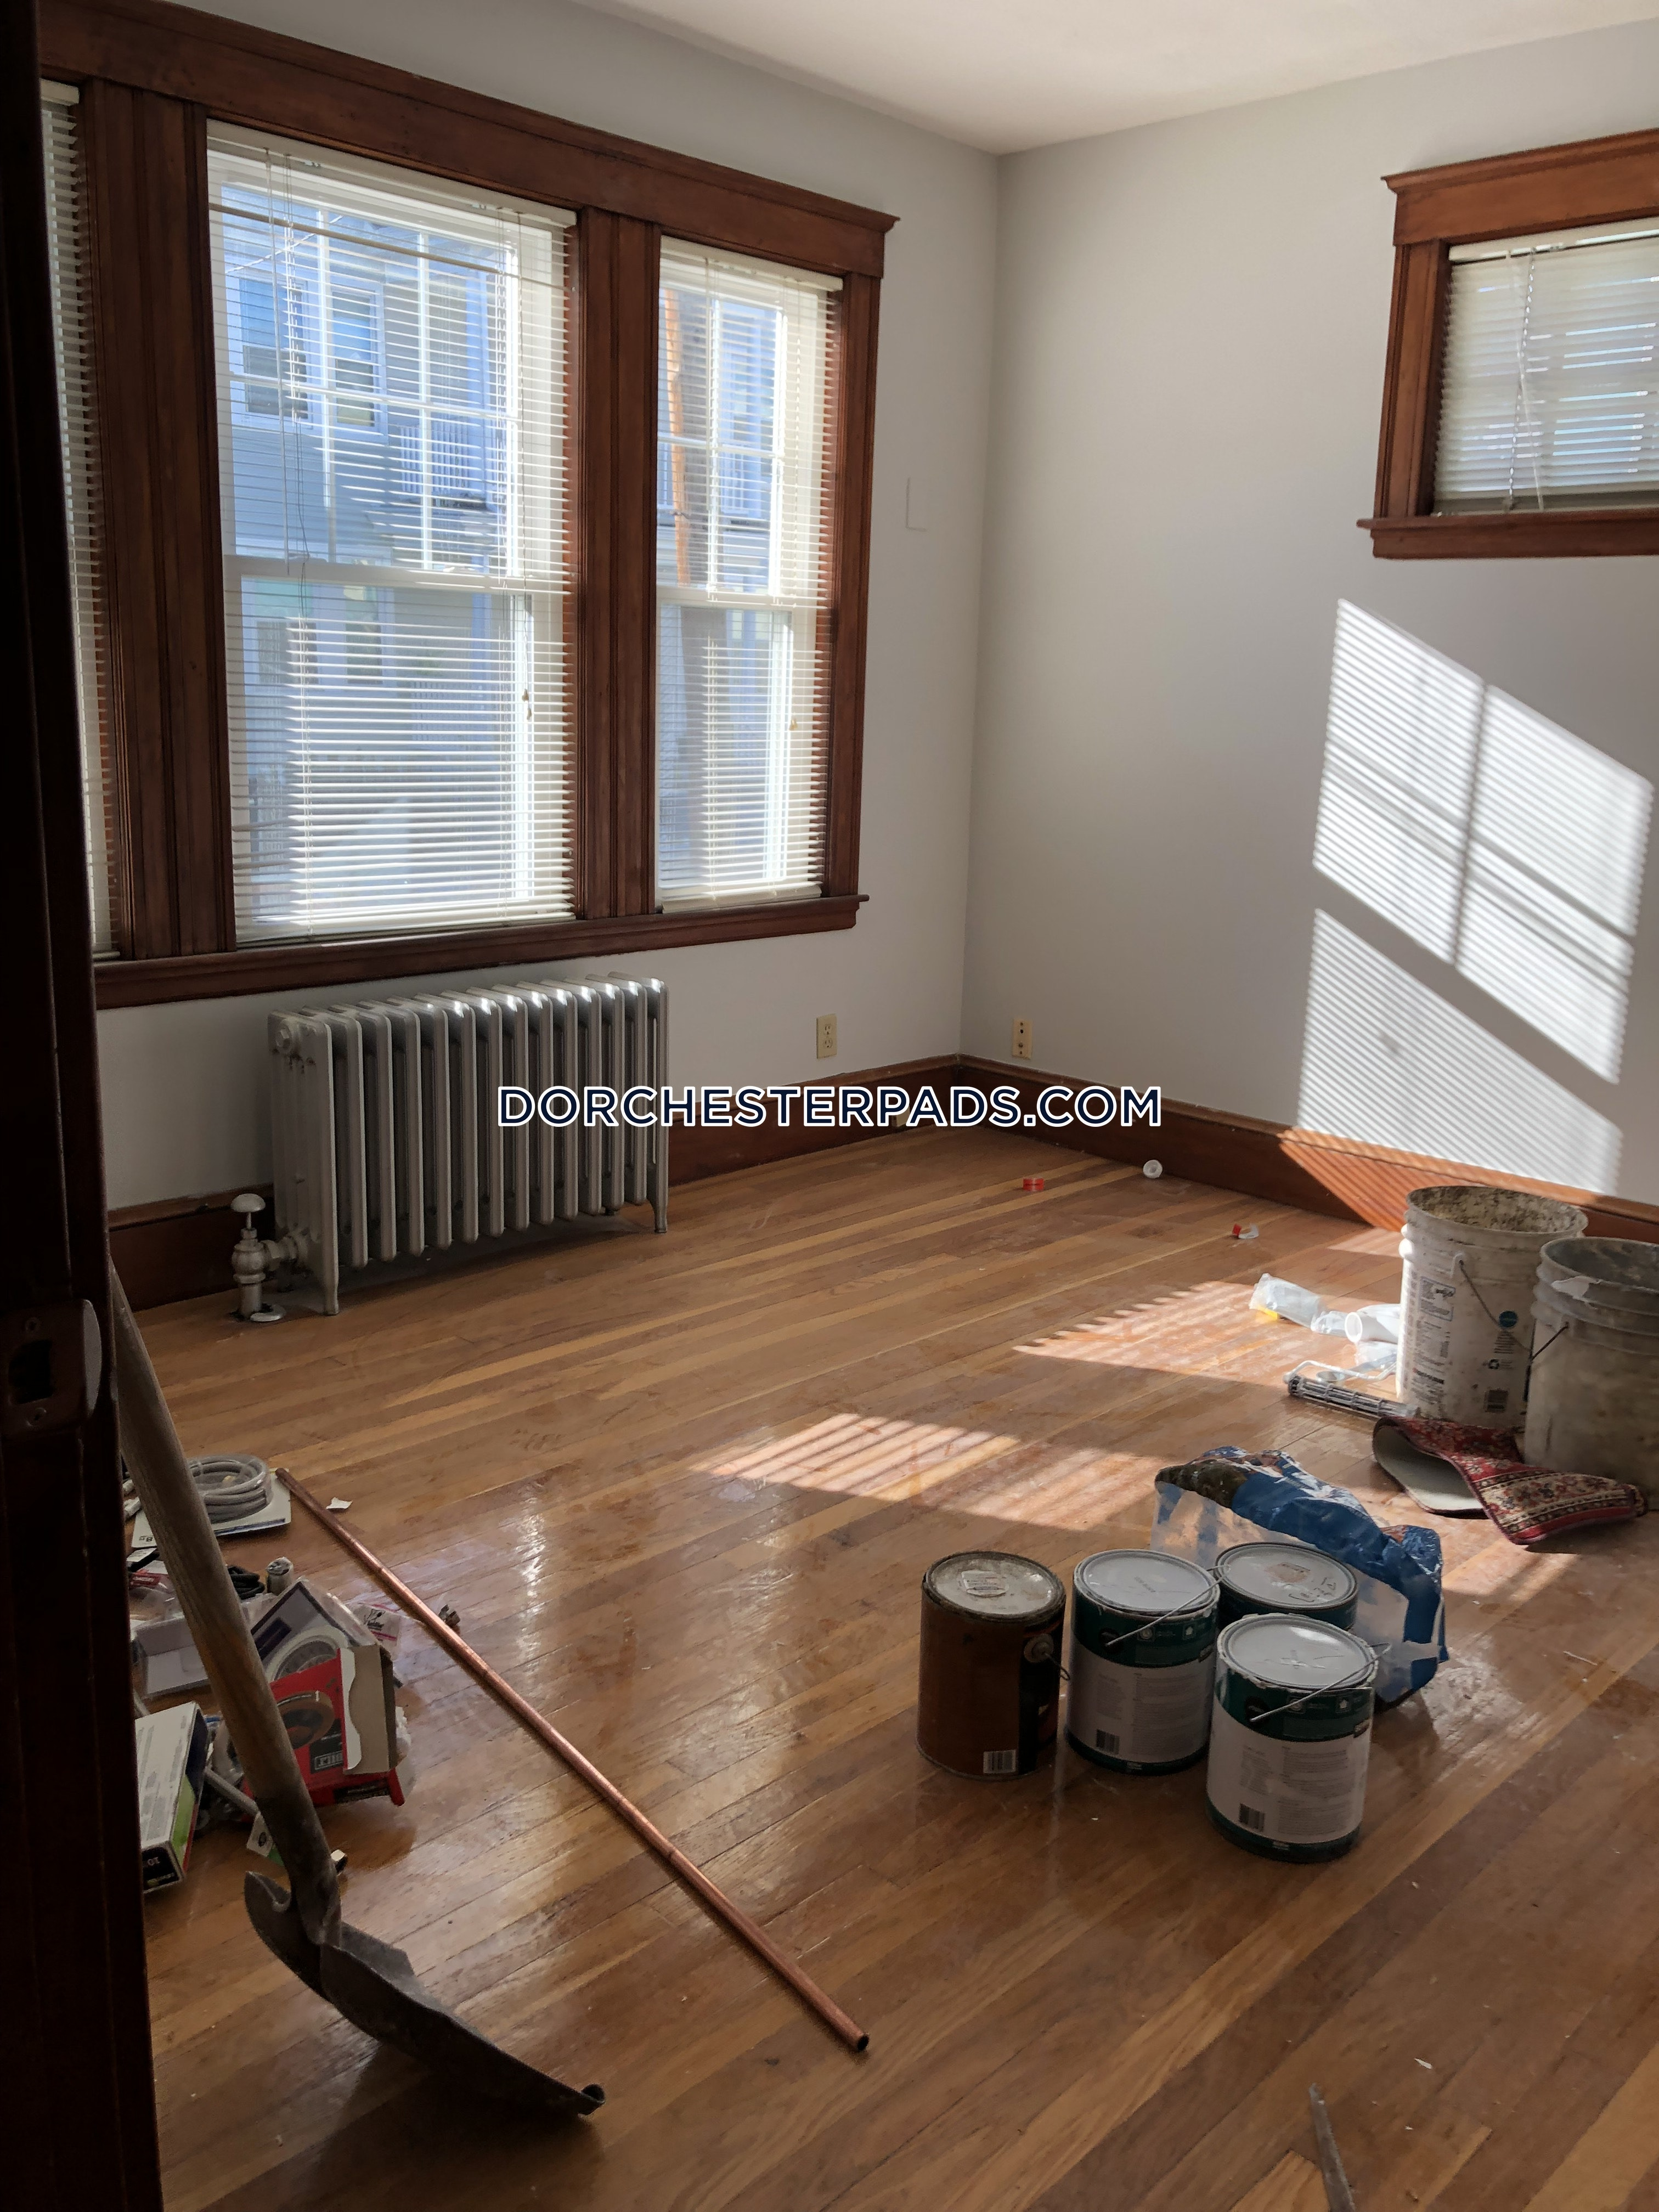 Boston apartments apartments for rent in boston for 2 bedroom apartments in dorchester ma